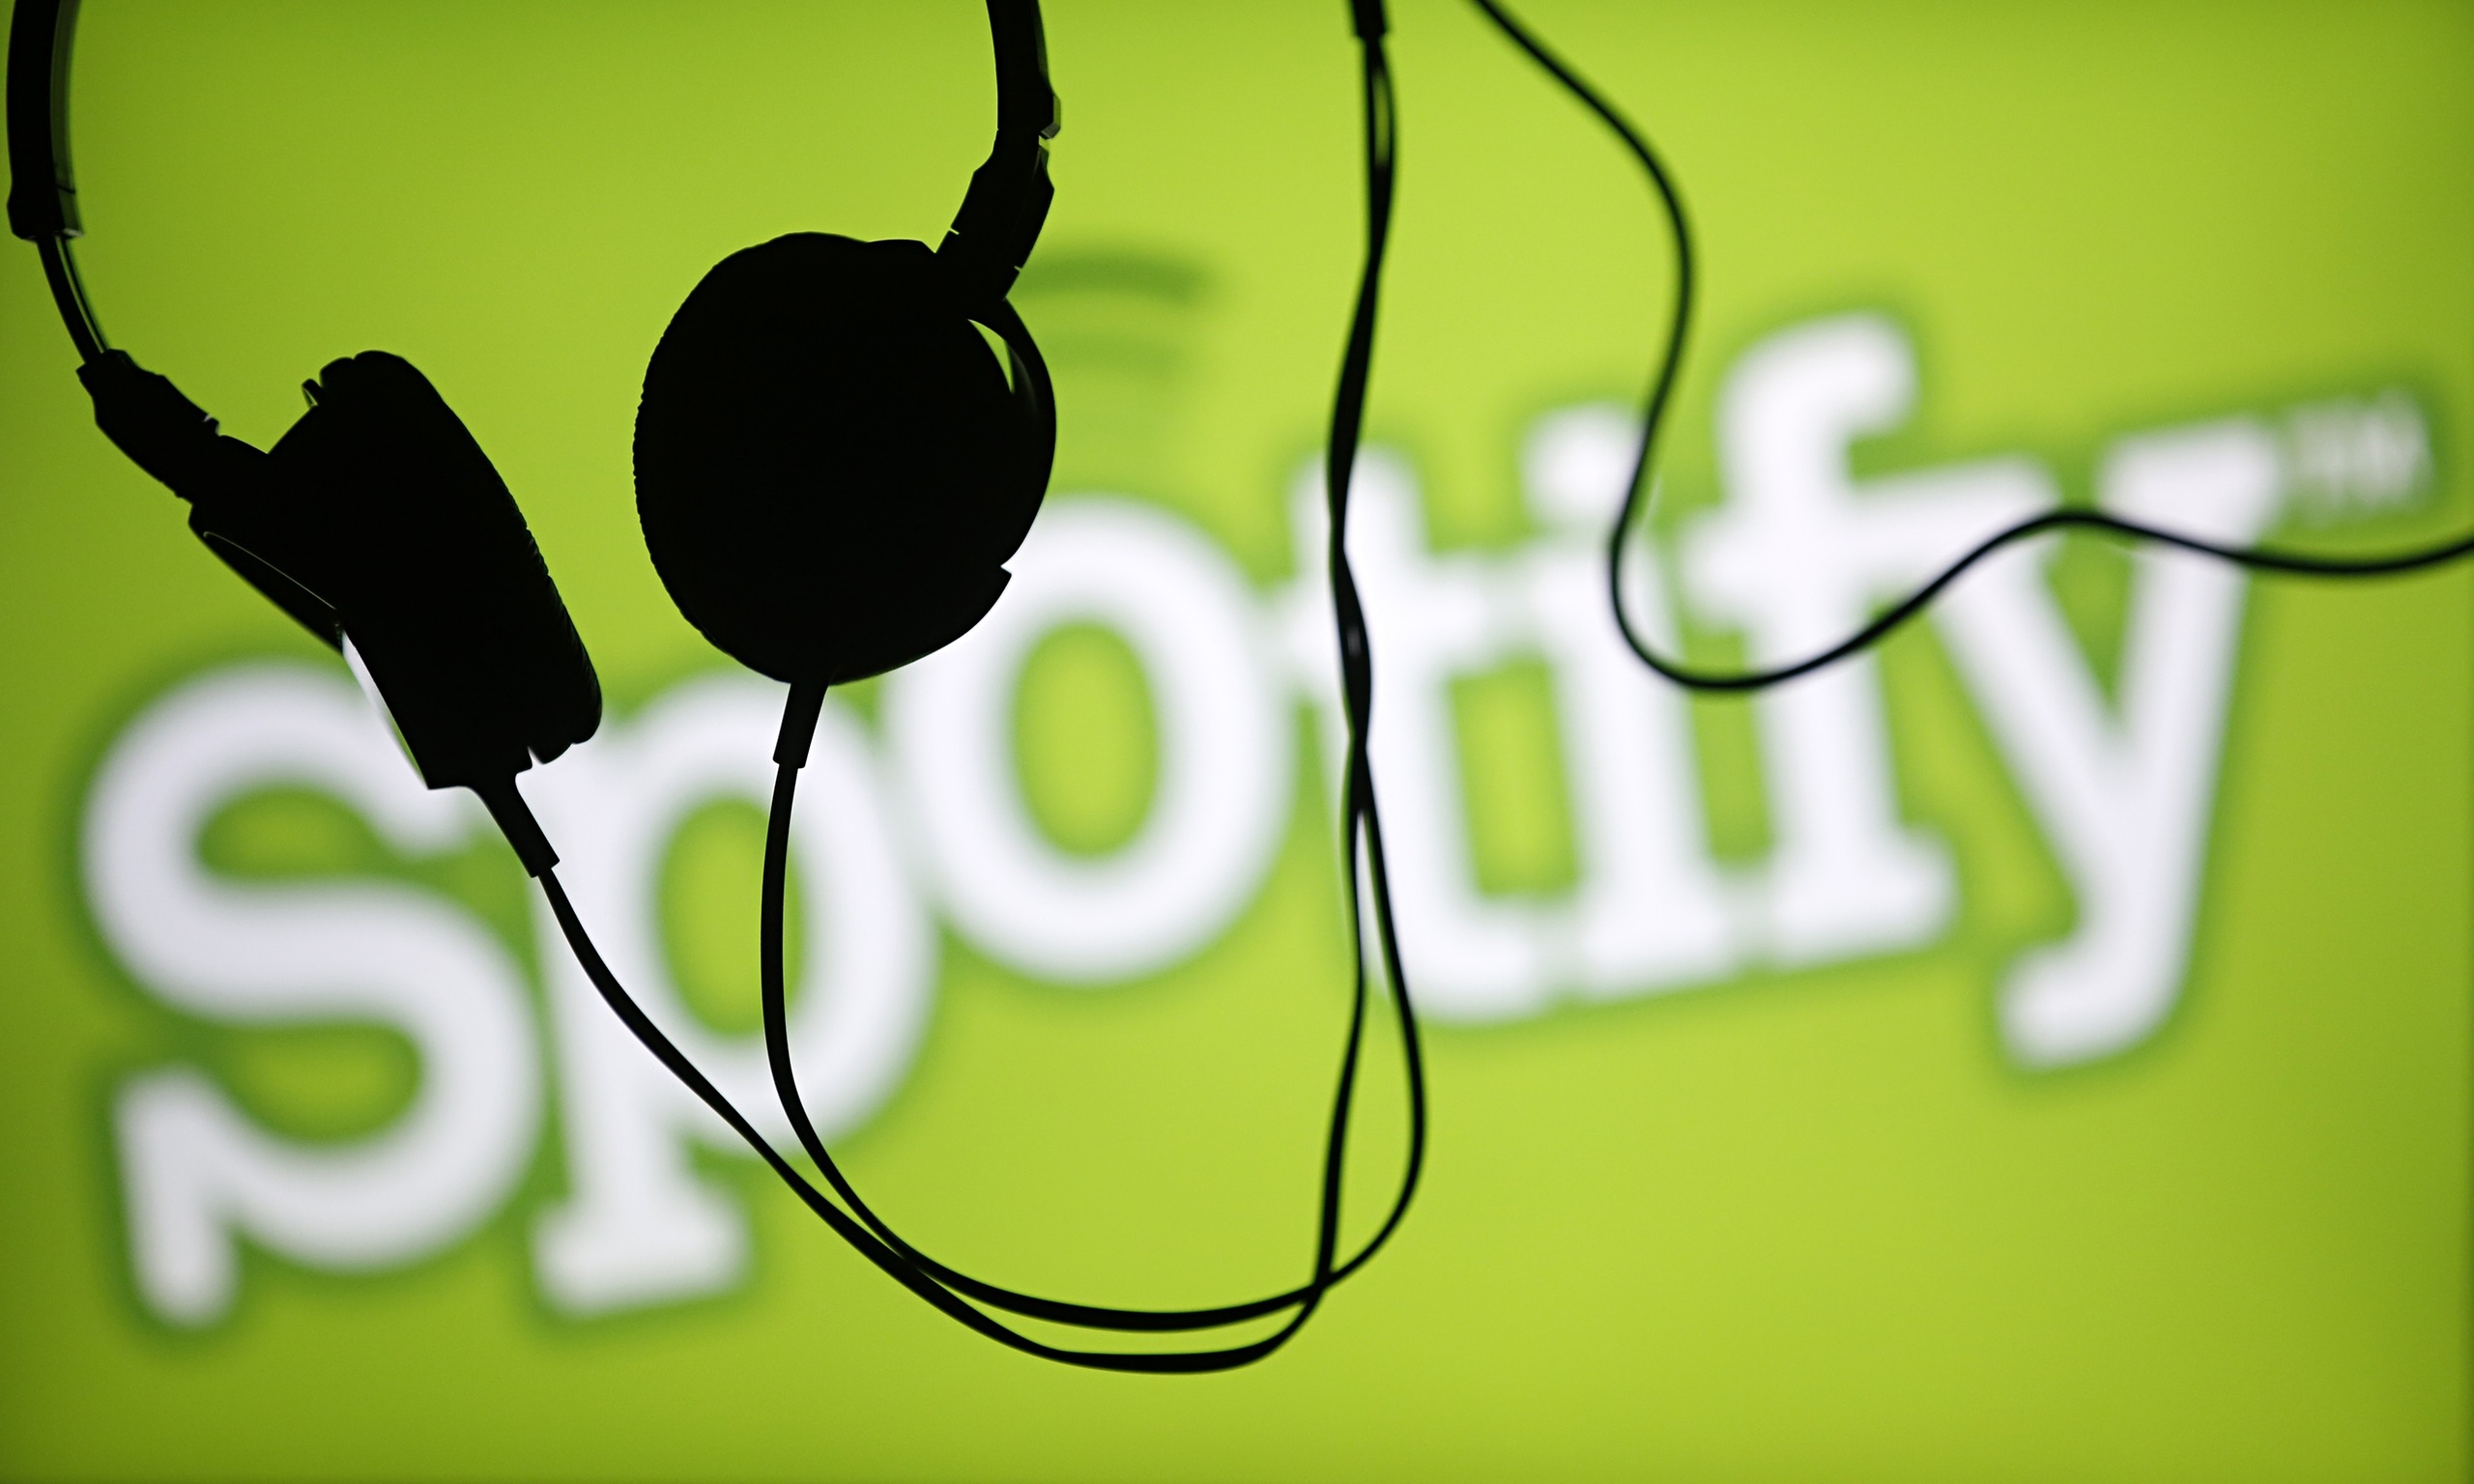 UK singles chart to take into account Spotify and other streaming sites